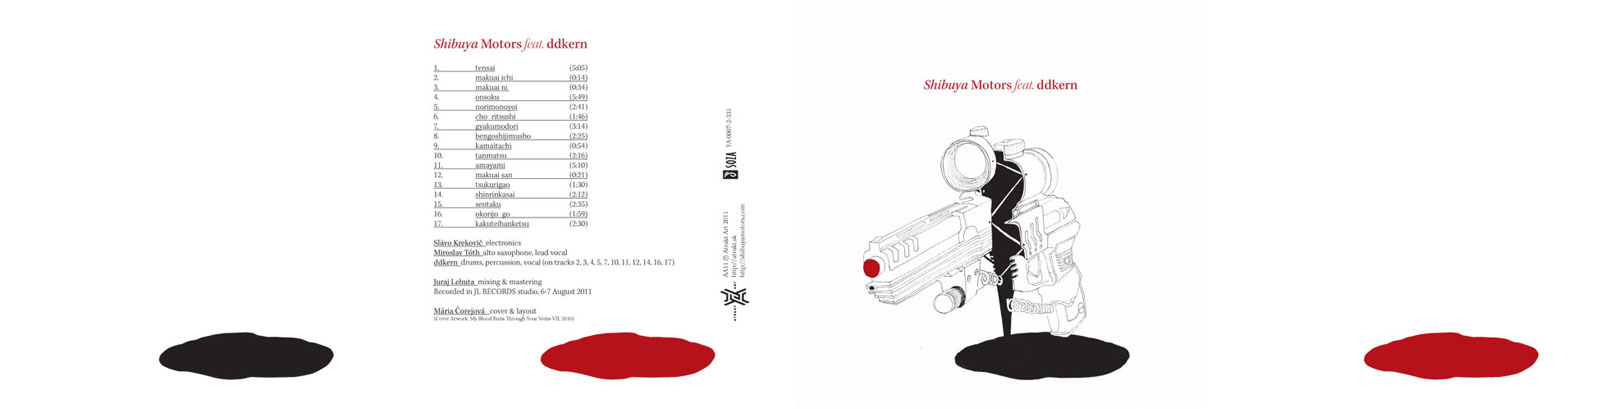 Shibuya Motors CD layout, 2012